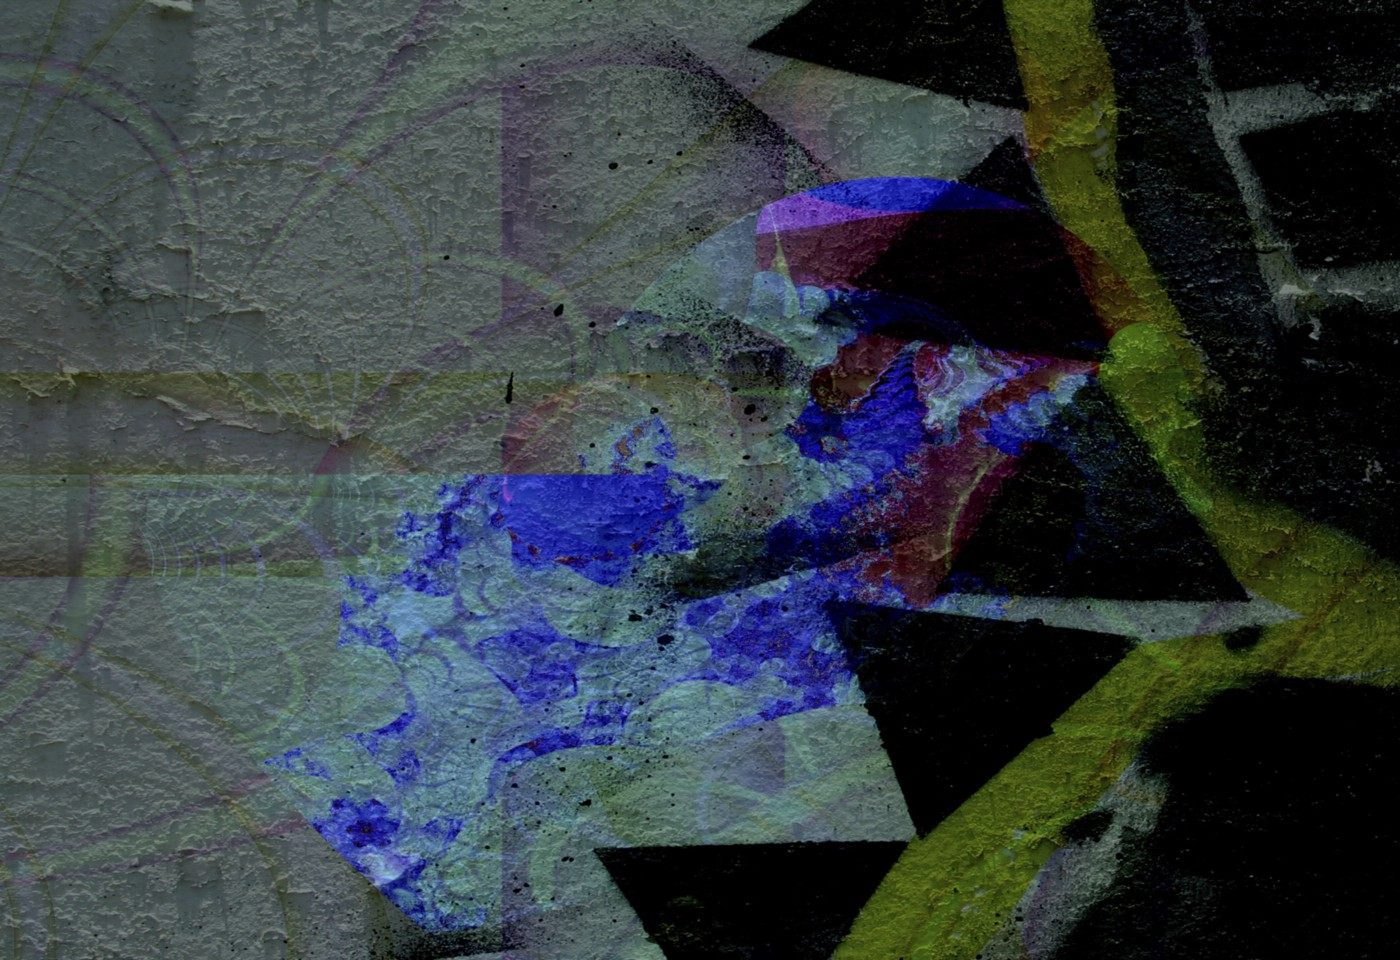 Abstract art using composite imagery to create texture and color, shades of blue, green and triangular areas of black.